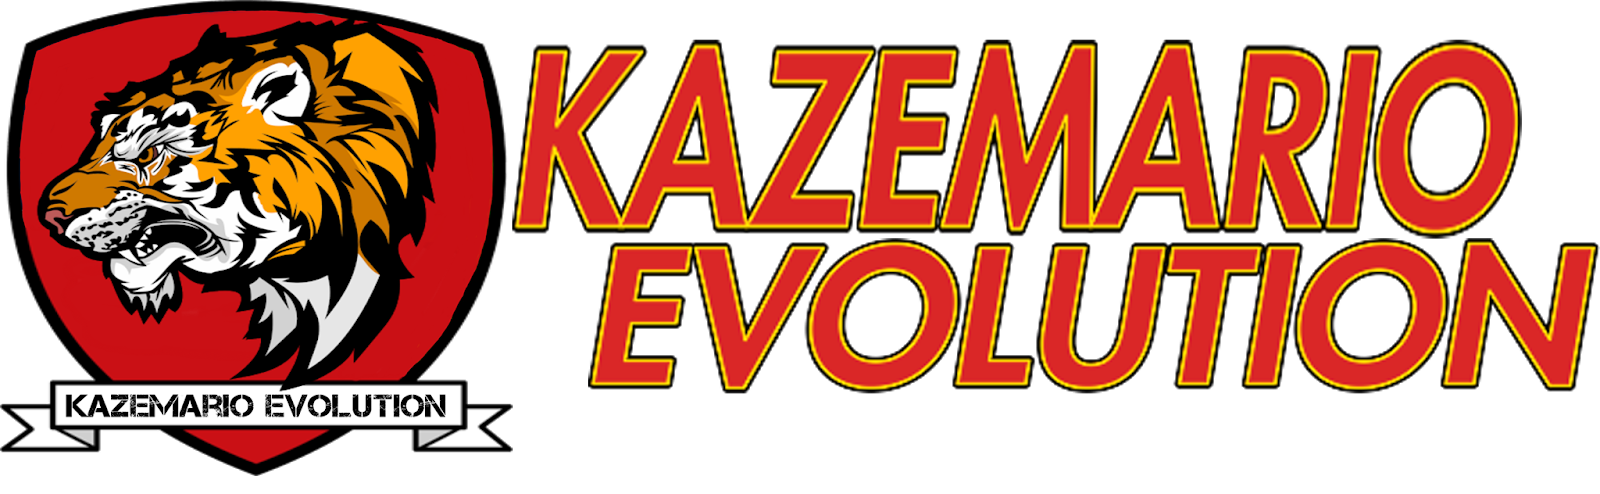 Kazemario Evolution